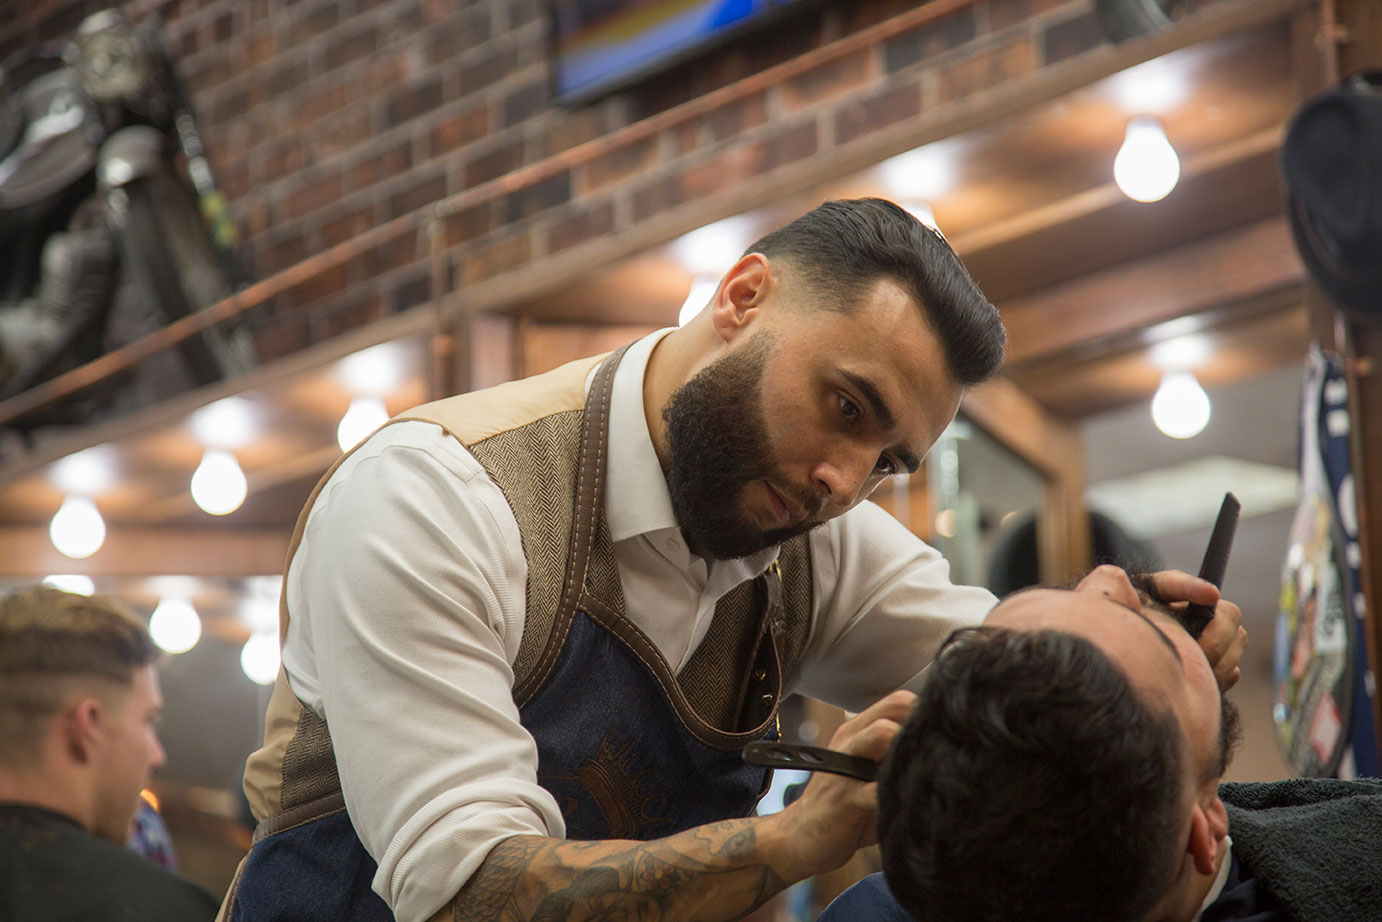 classic and contemporary haircuts & grooming